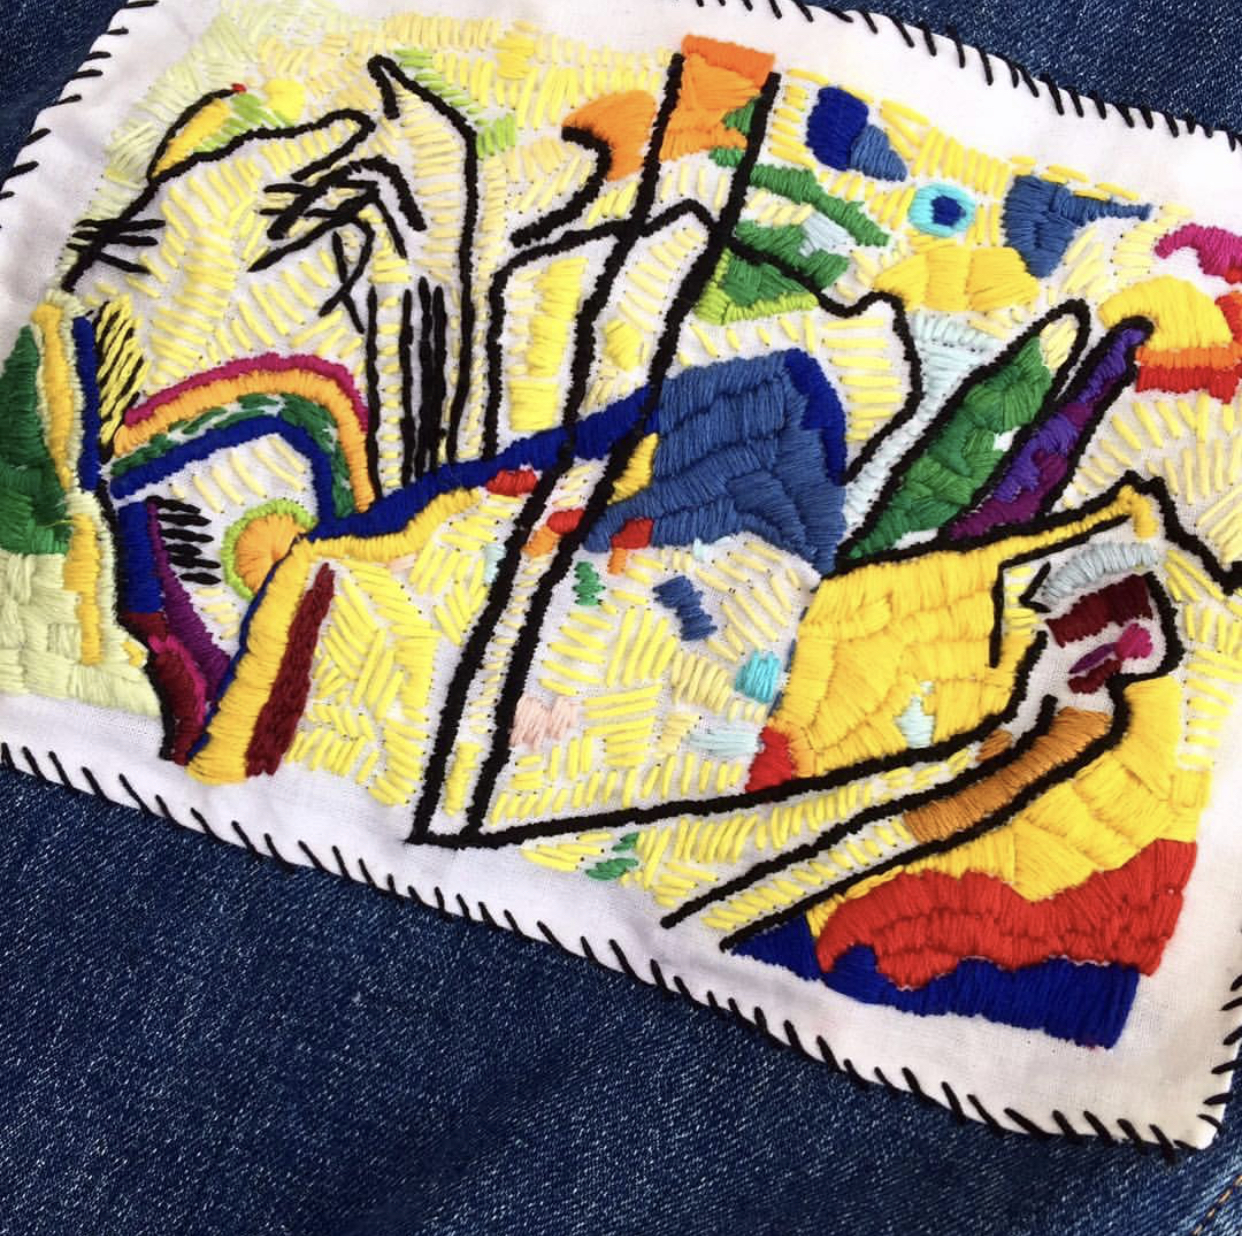 """Wassily Kandinsky's """"Composition IV"""" hand embroidered on vintage fabric then stitched on the back of a denim jacket"""